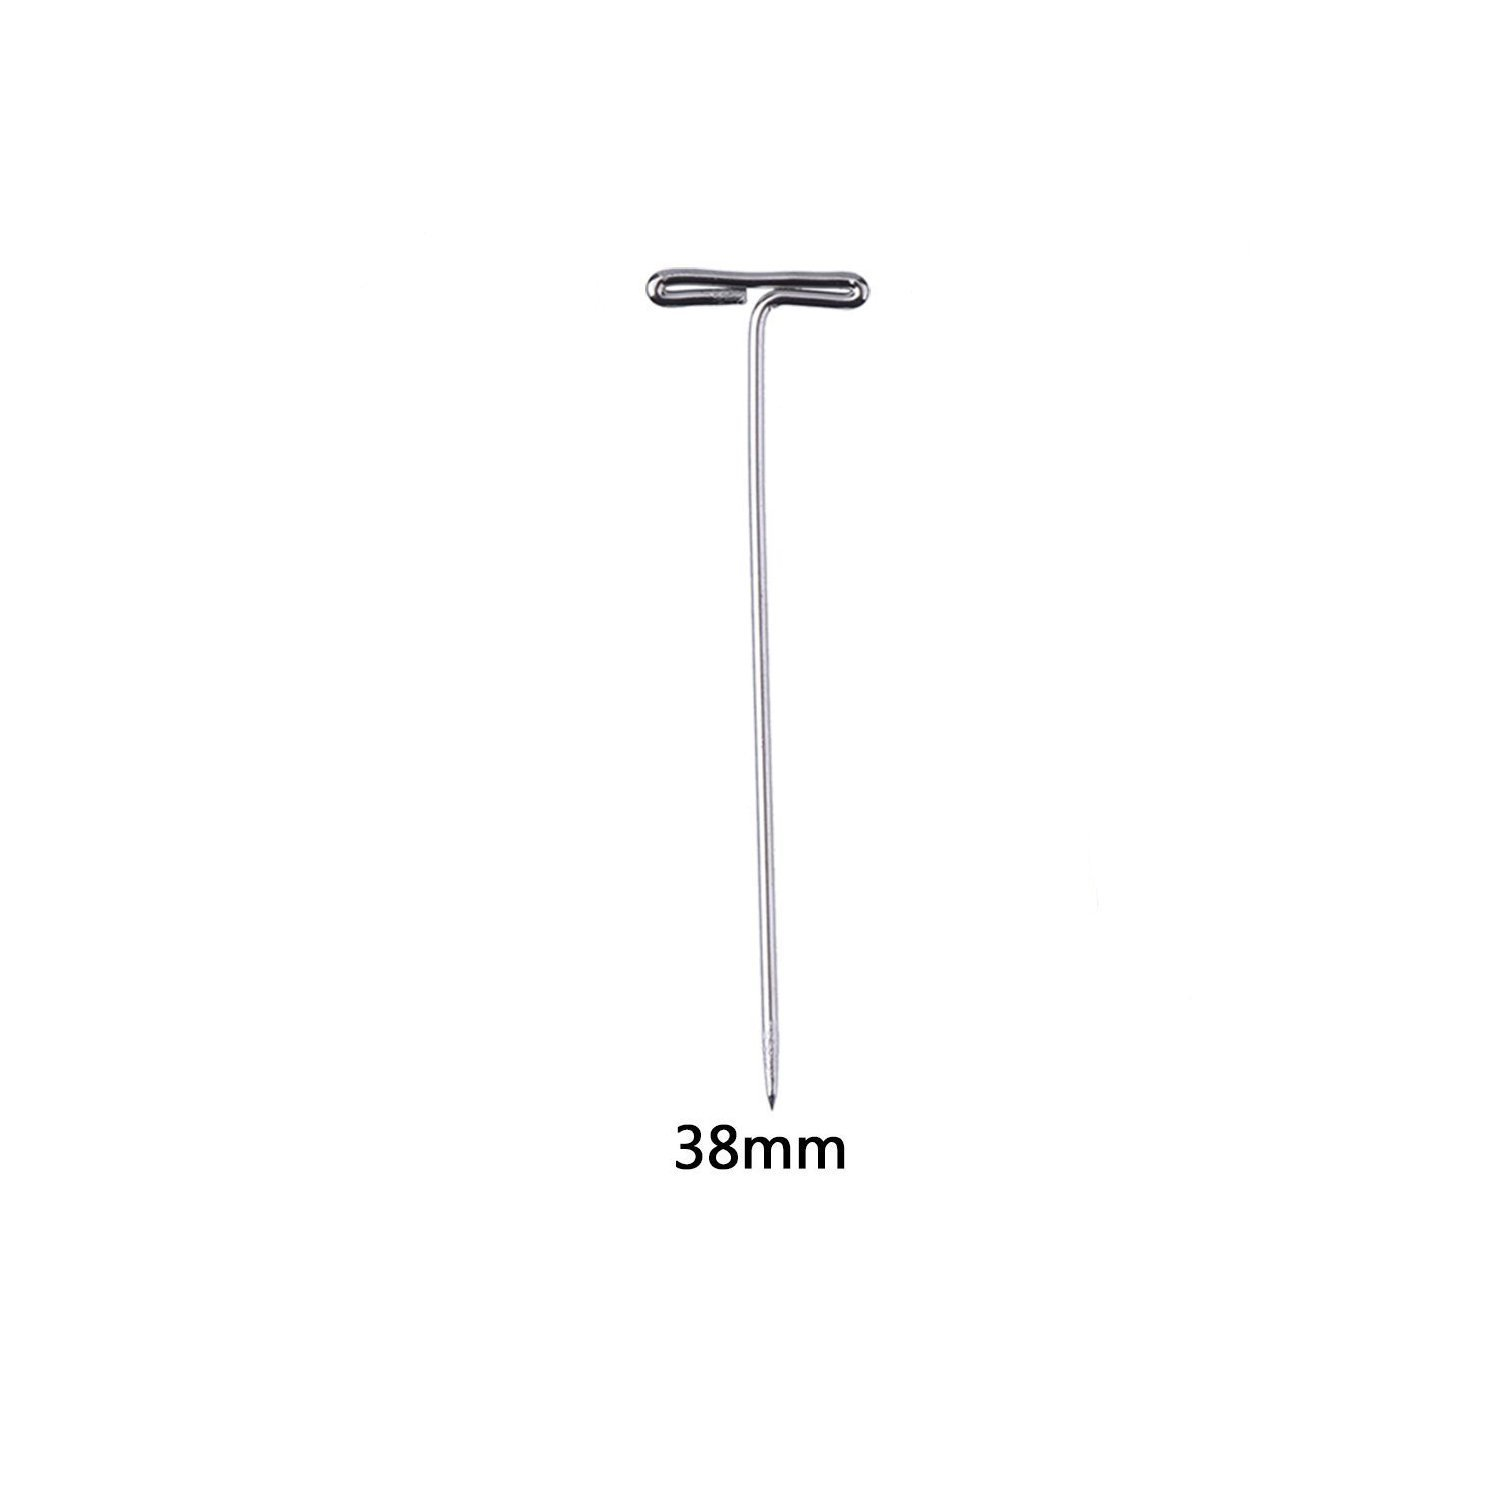 Grosun 400pcs 38mm//1.5inch Stainless Steel T-Pins Sewing Pins for Knitting and Blocking